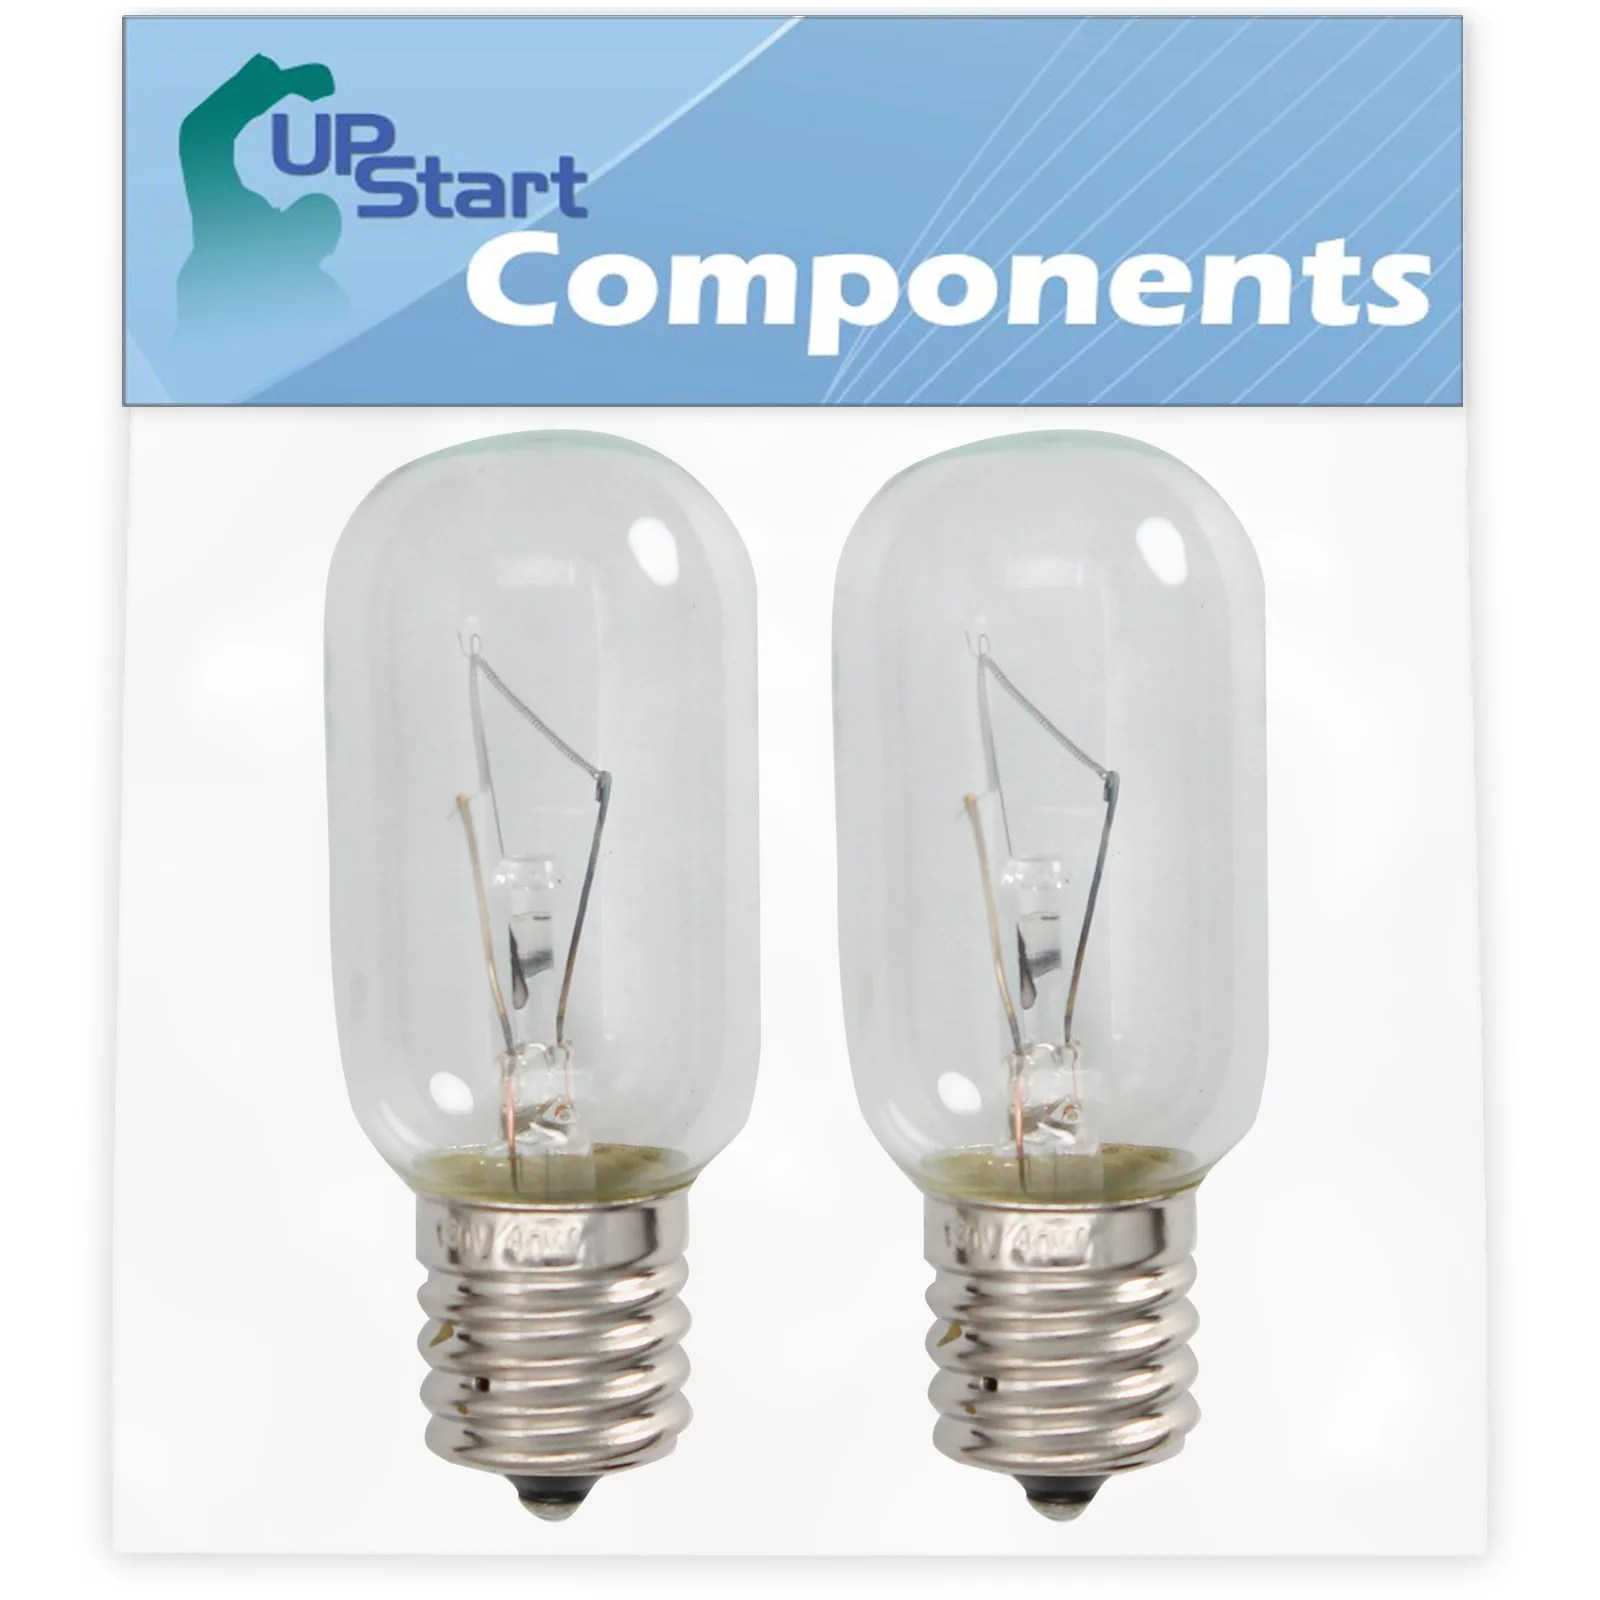 2 pack 4713 001013 microwave light bulb replacement for samsung mc17j8000cs aa 0000 microwave compatible with samsung 4713 001013 light bulb